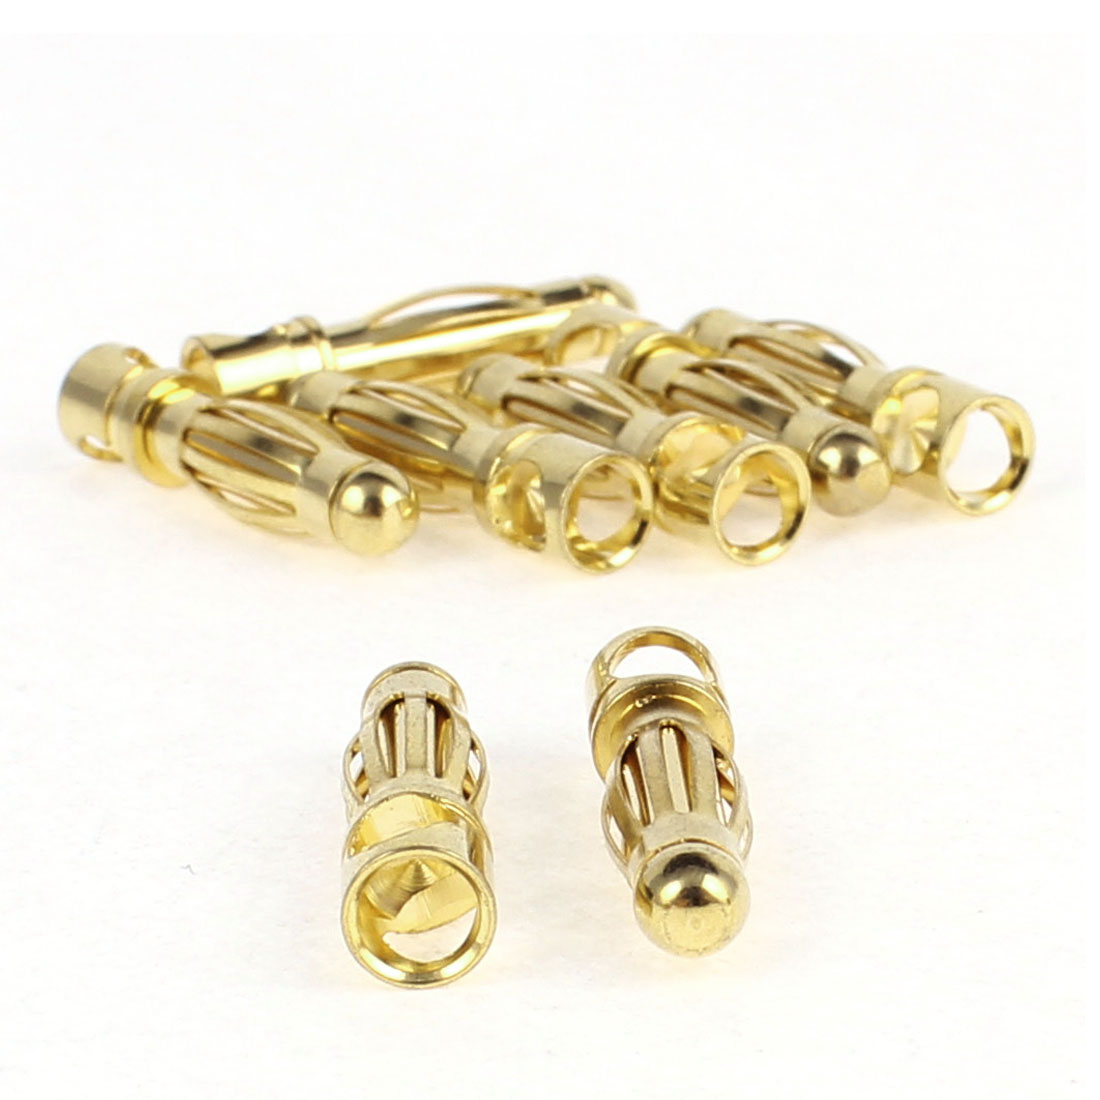 RC Motor ESC Battery Replacement 4mm Male Banana Plugs Connector 8pcs